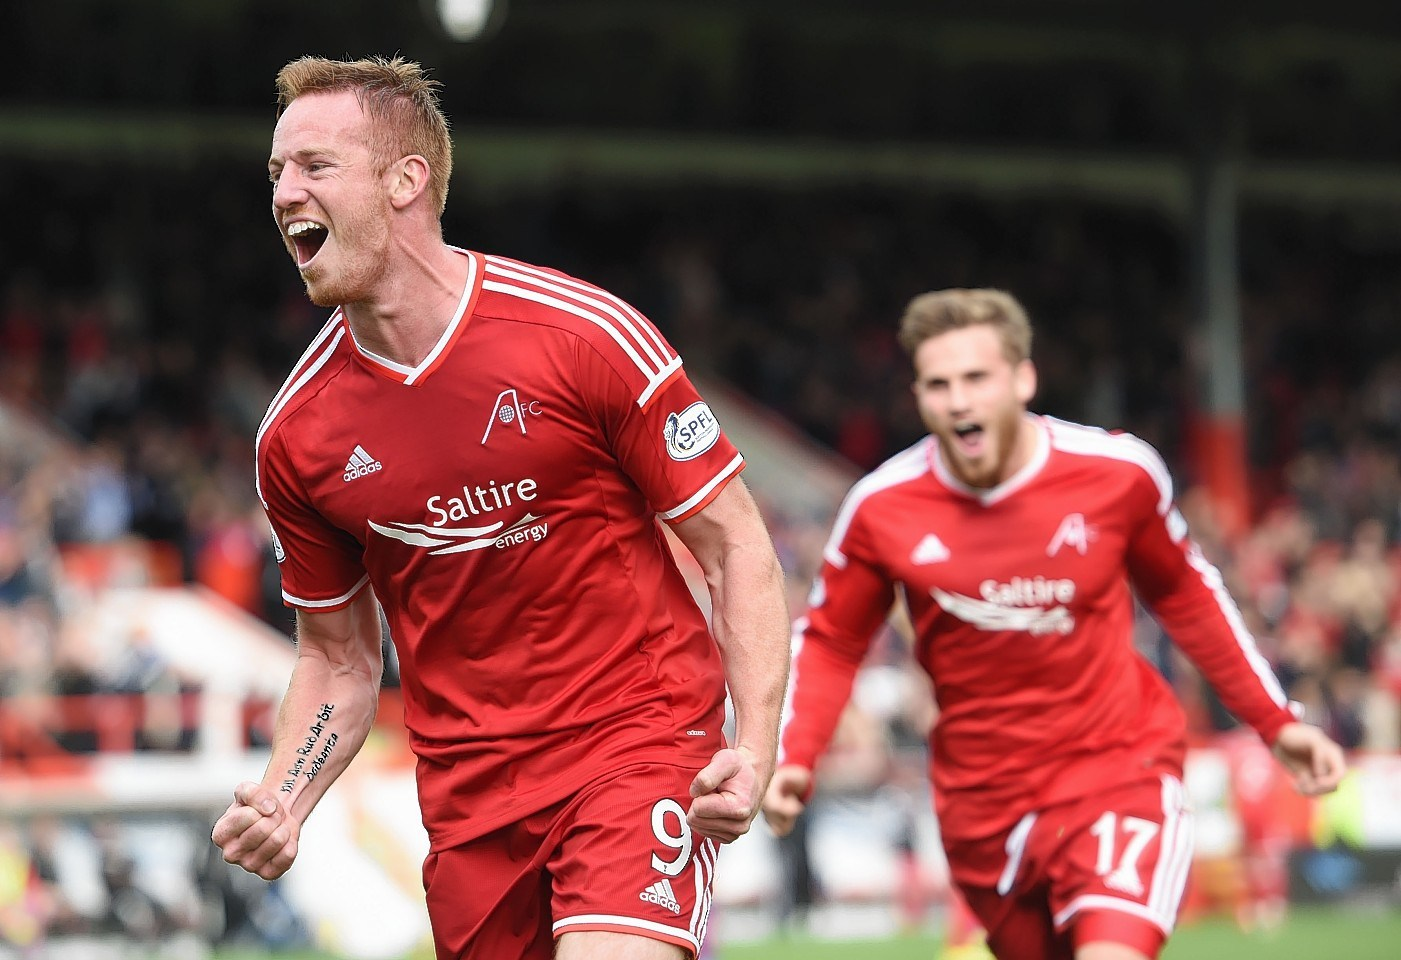 Keep updated on Aberdeen v Motherwell with our live blog